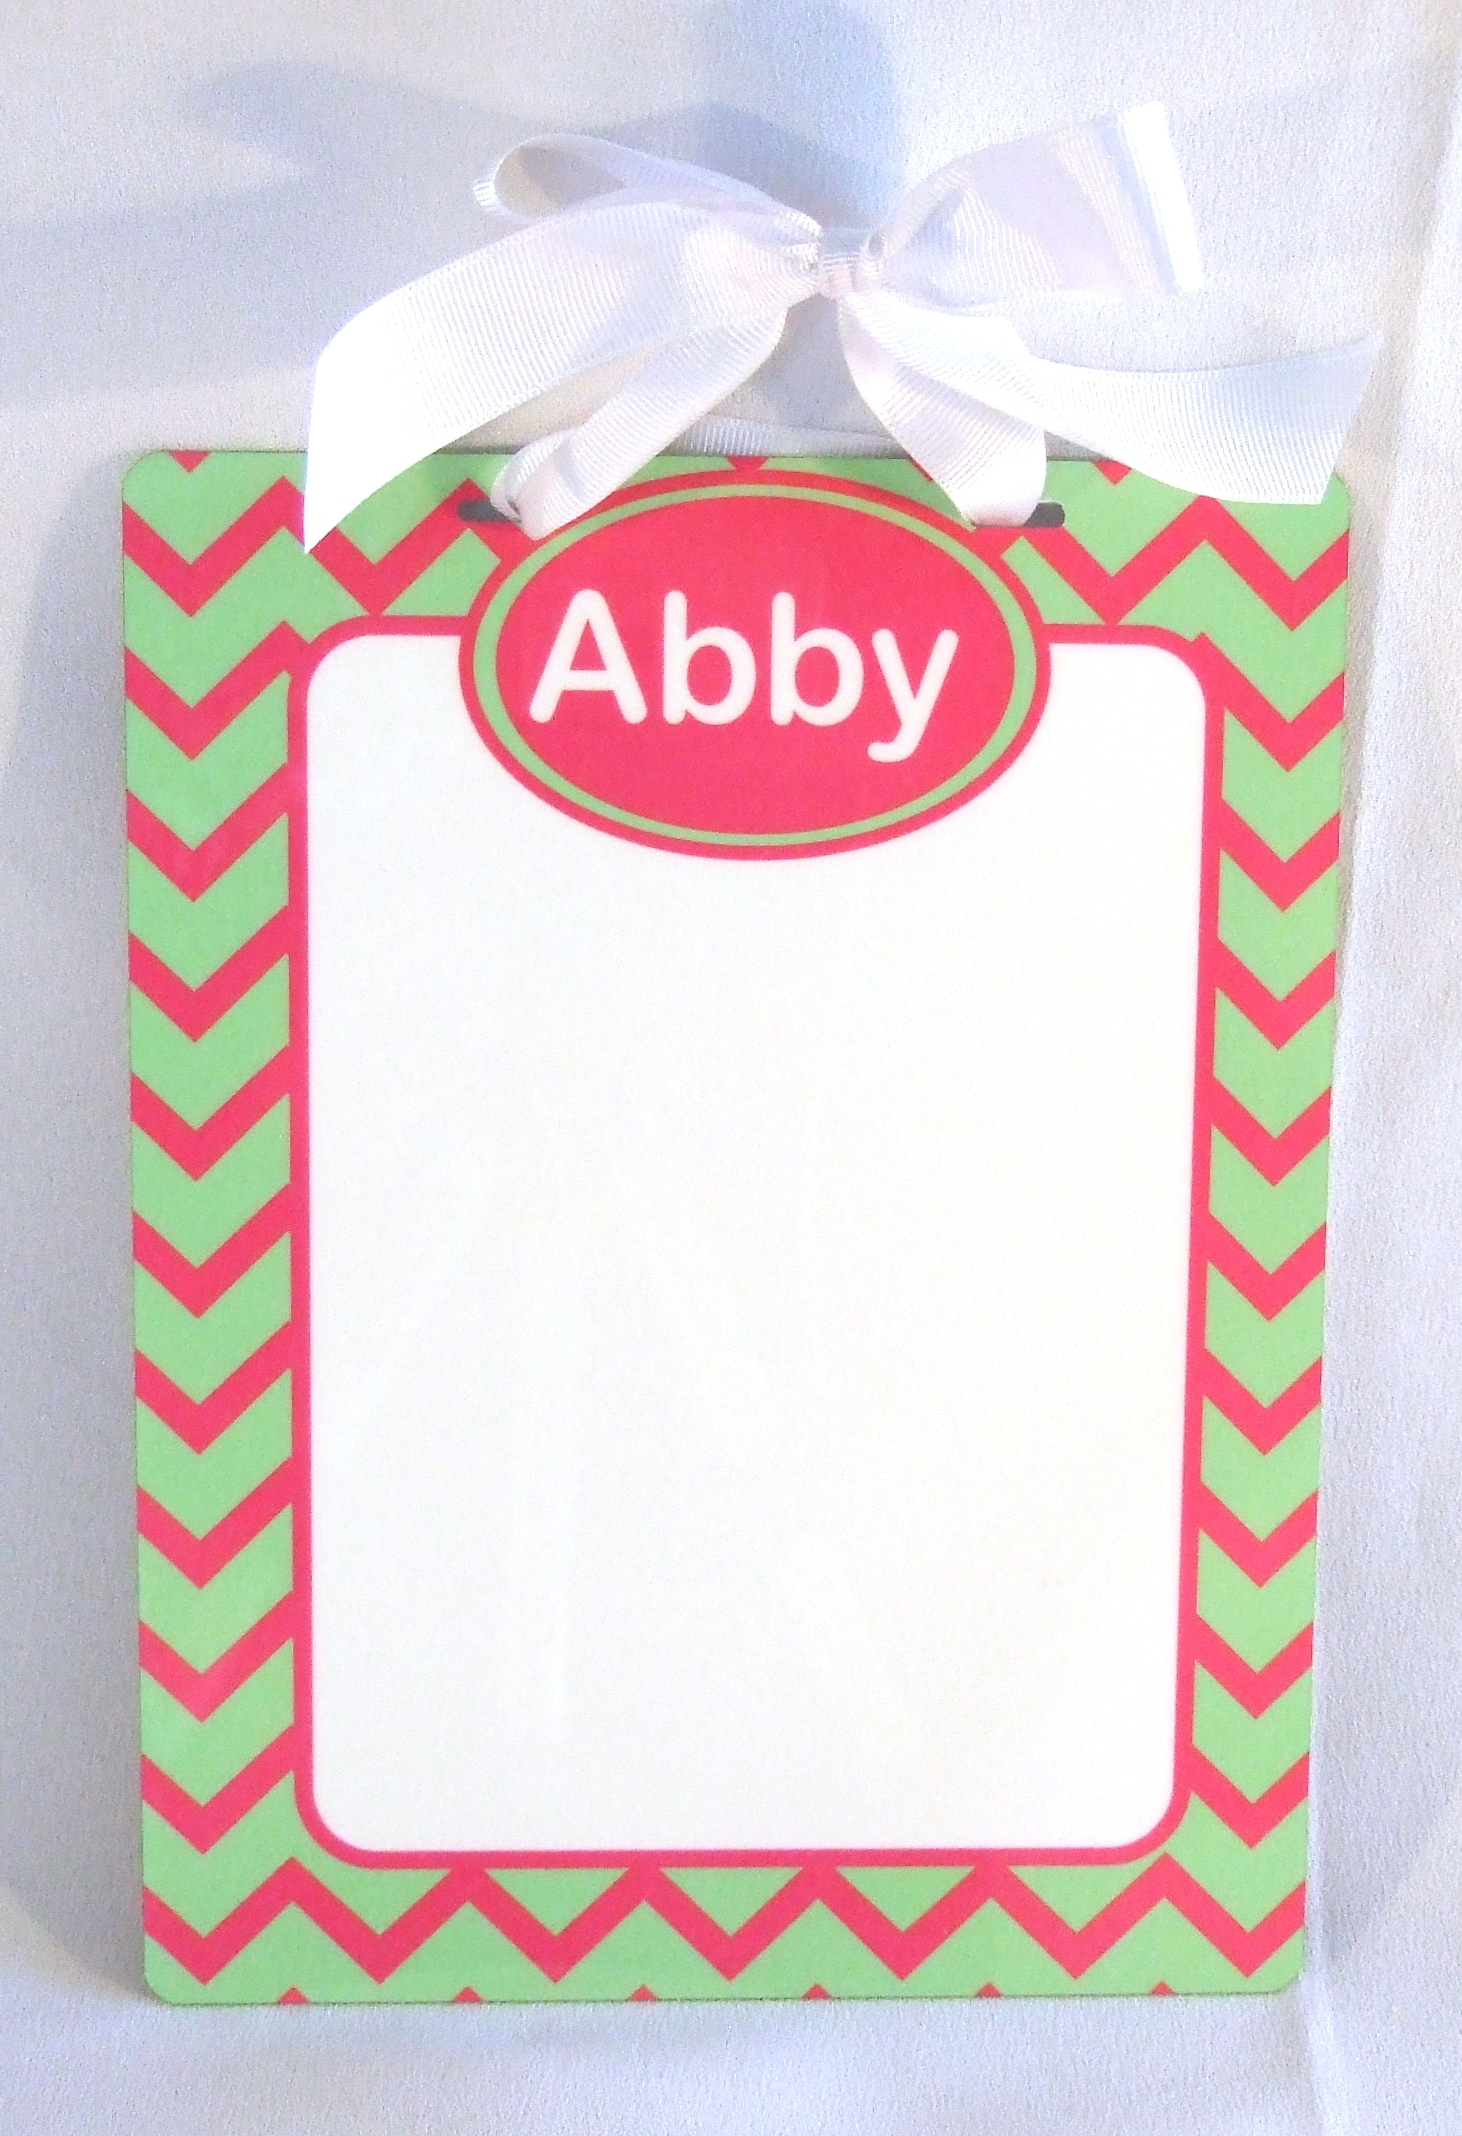 Personalized metal dry erase board with lime green and hot pink chevron pattern and hot pink trim  DEB1006